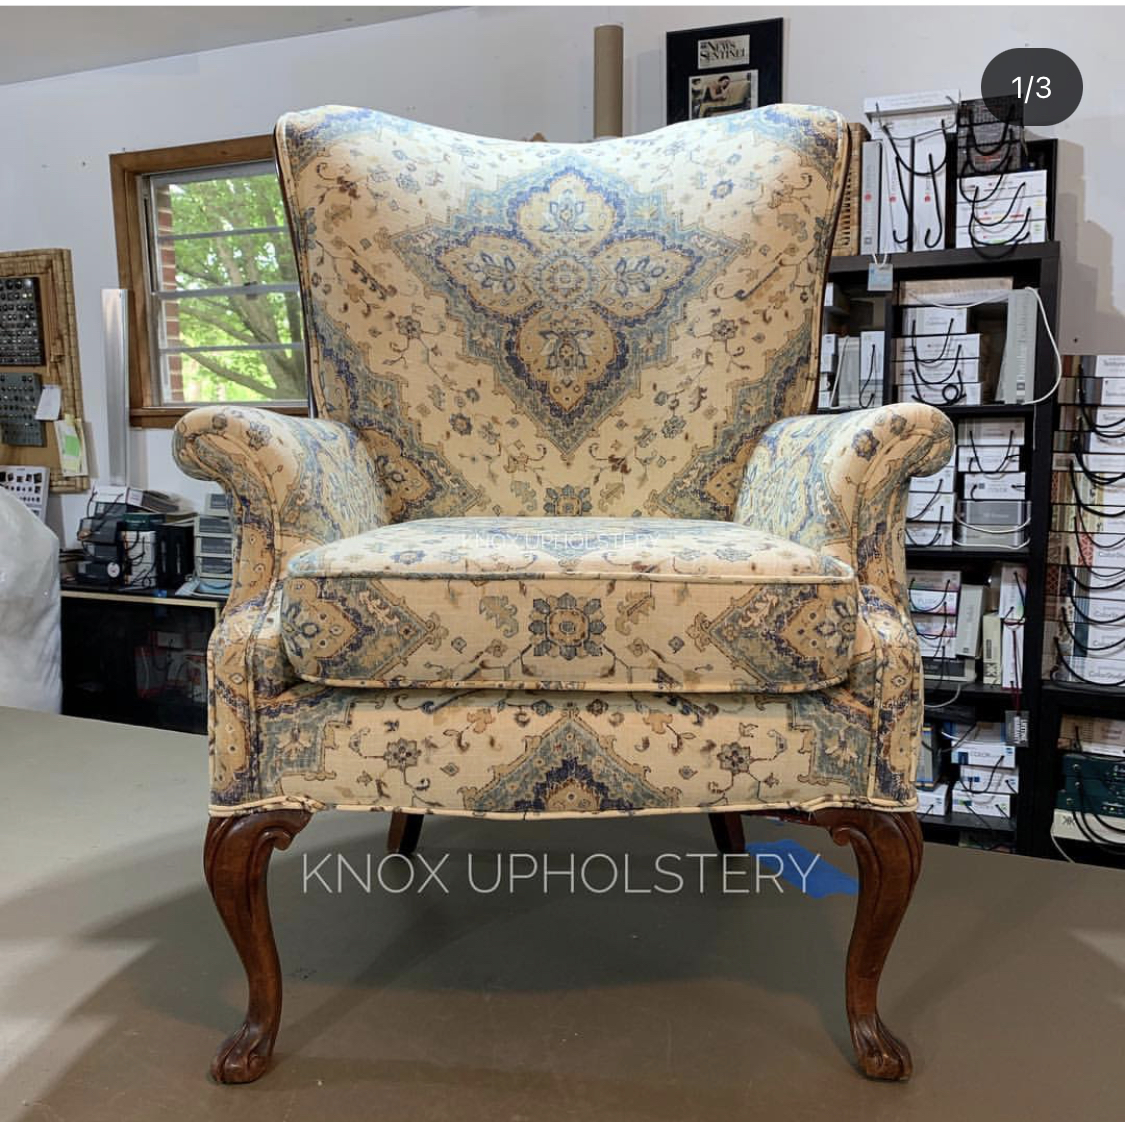 Knox Upholstery Chair 1